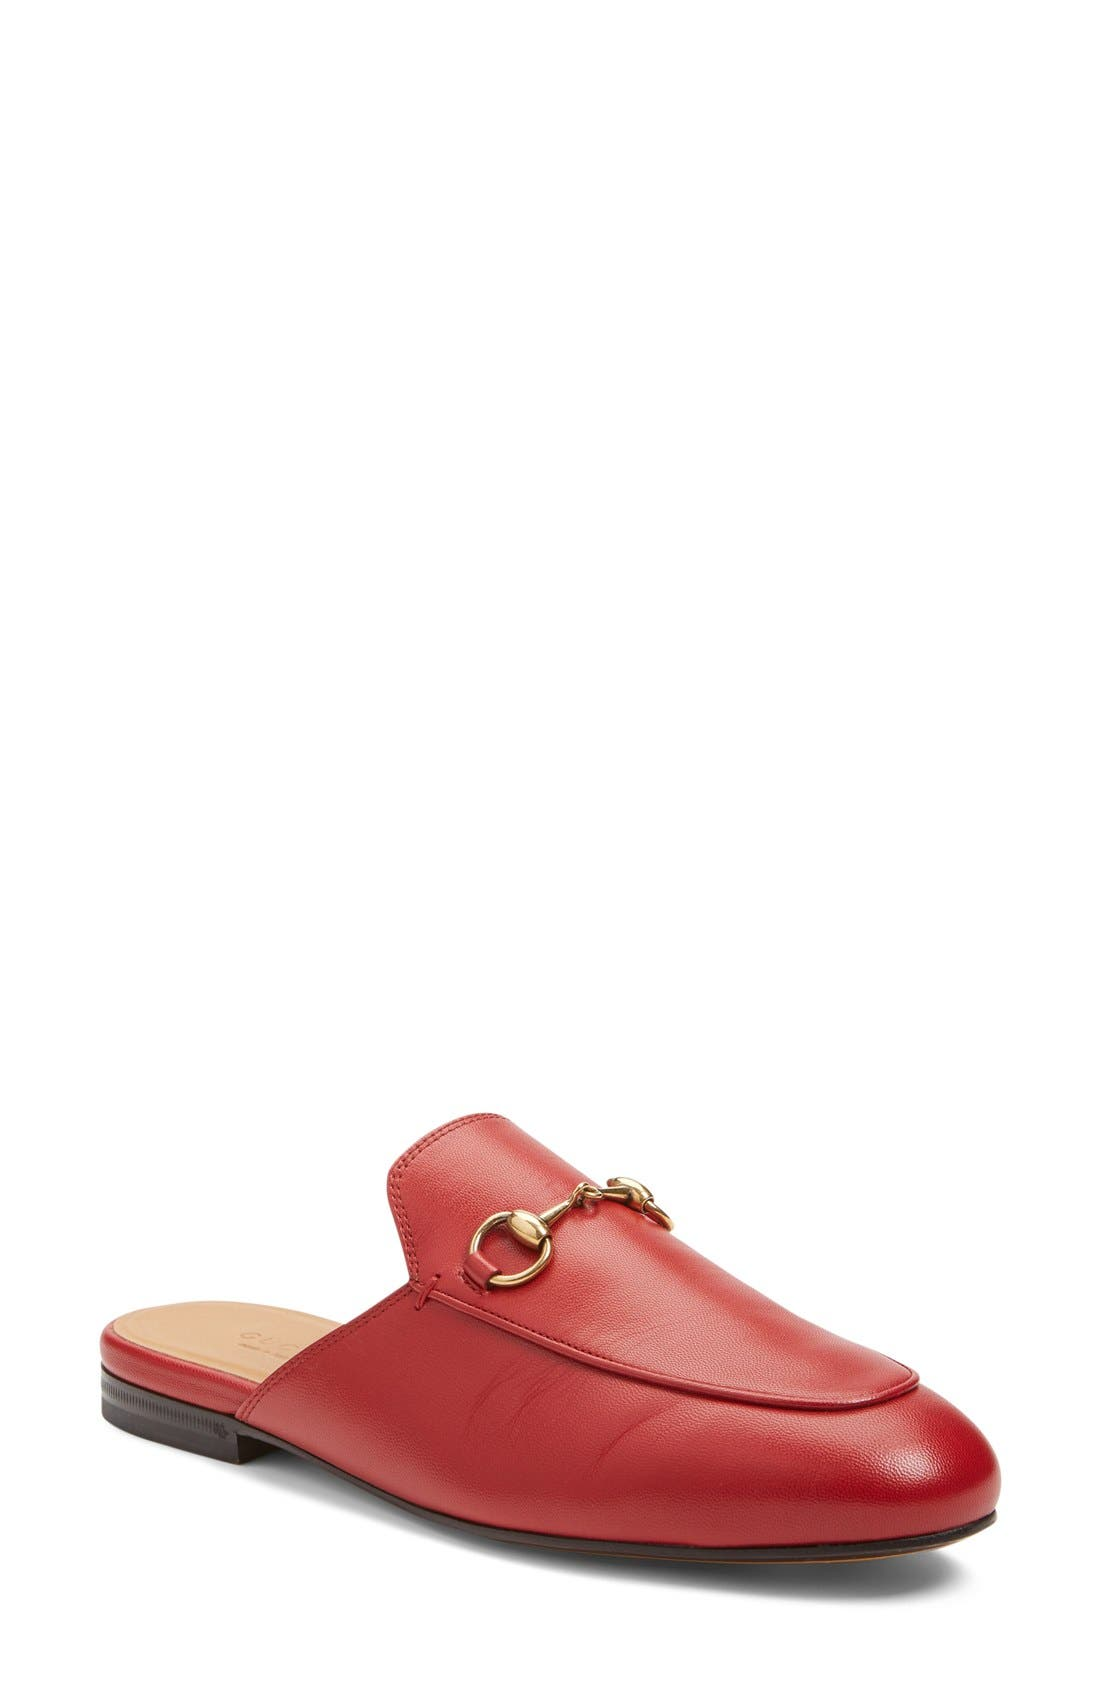 Princetown Loafer Mule,                         Main,                         color, RED LEATHER